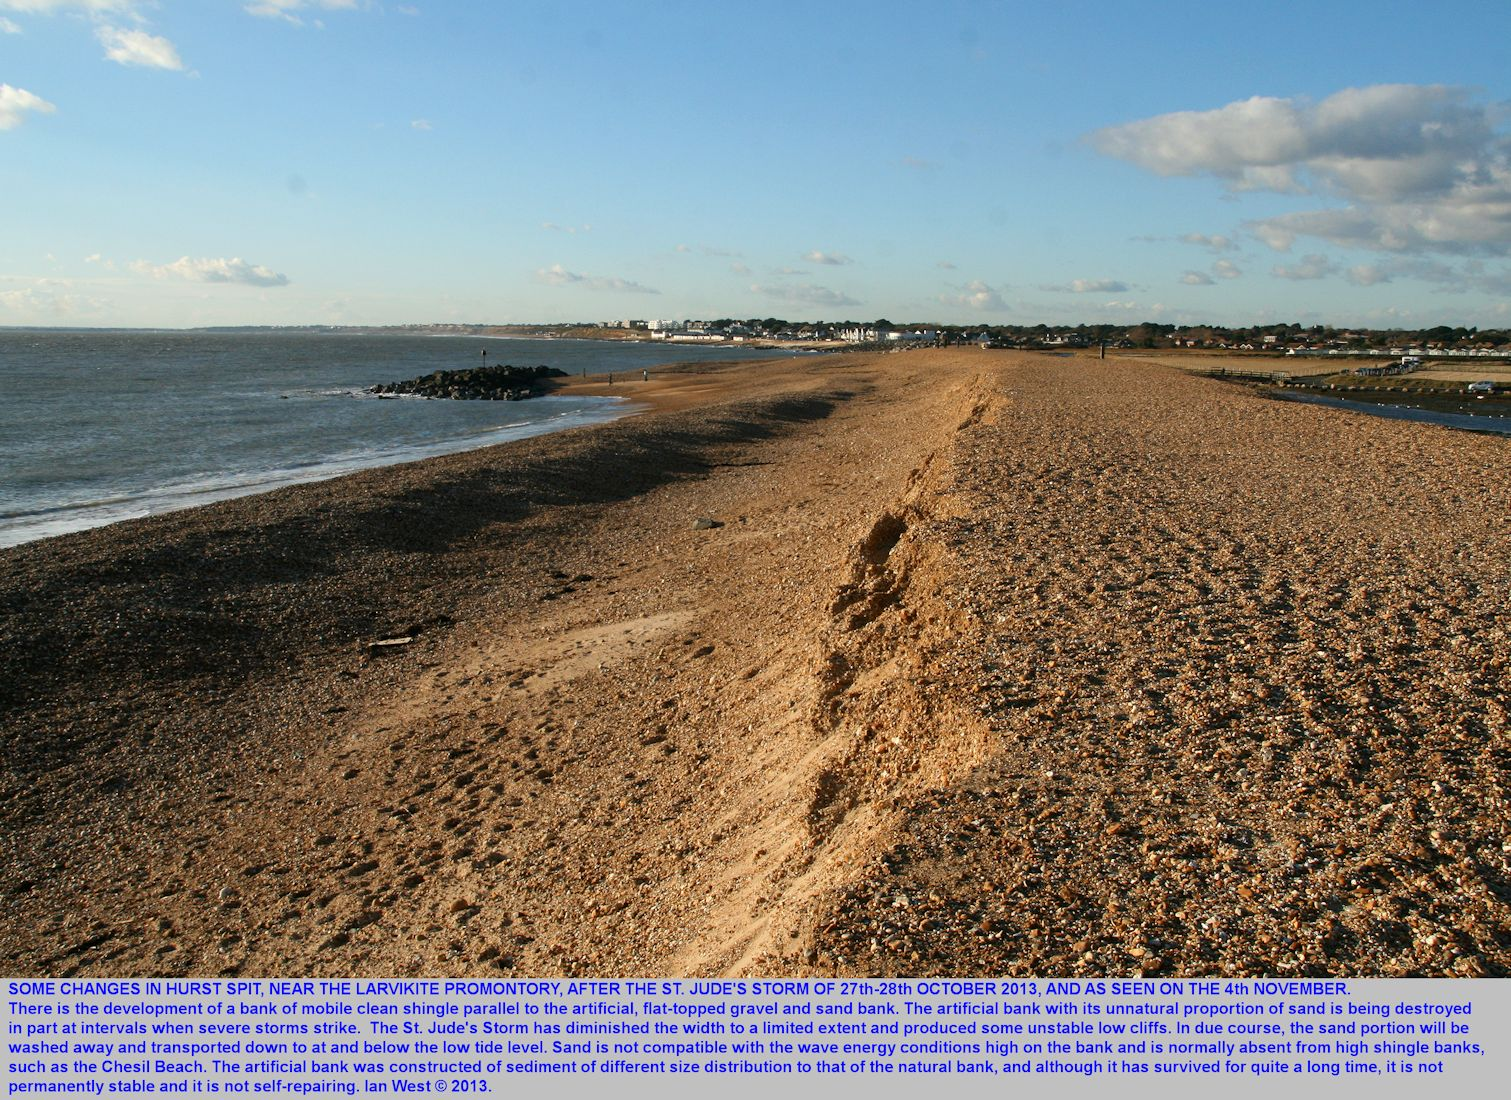 The western end of Hurst Spit, Hampshire, after the St. Jude's Storm, looking westward towards the larvikite promontory, 4th November 2013